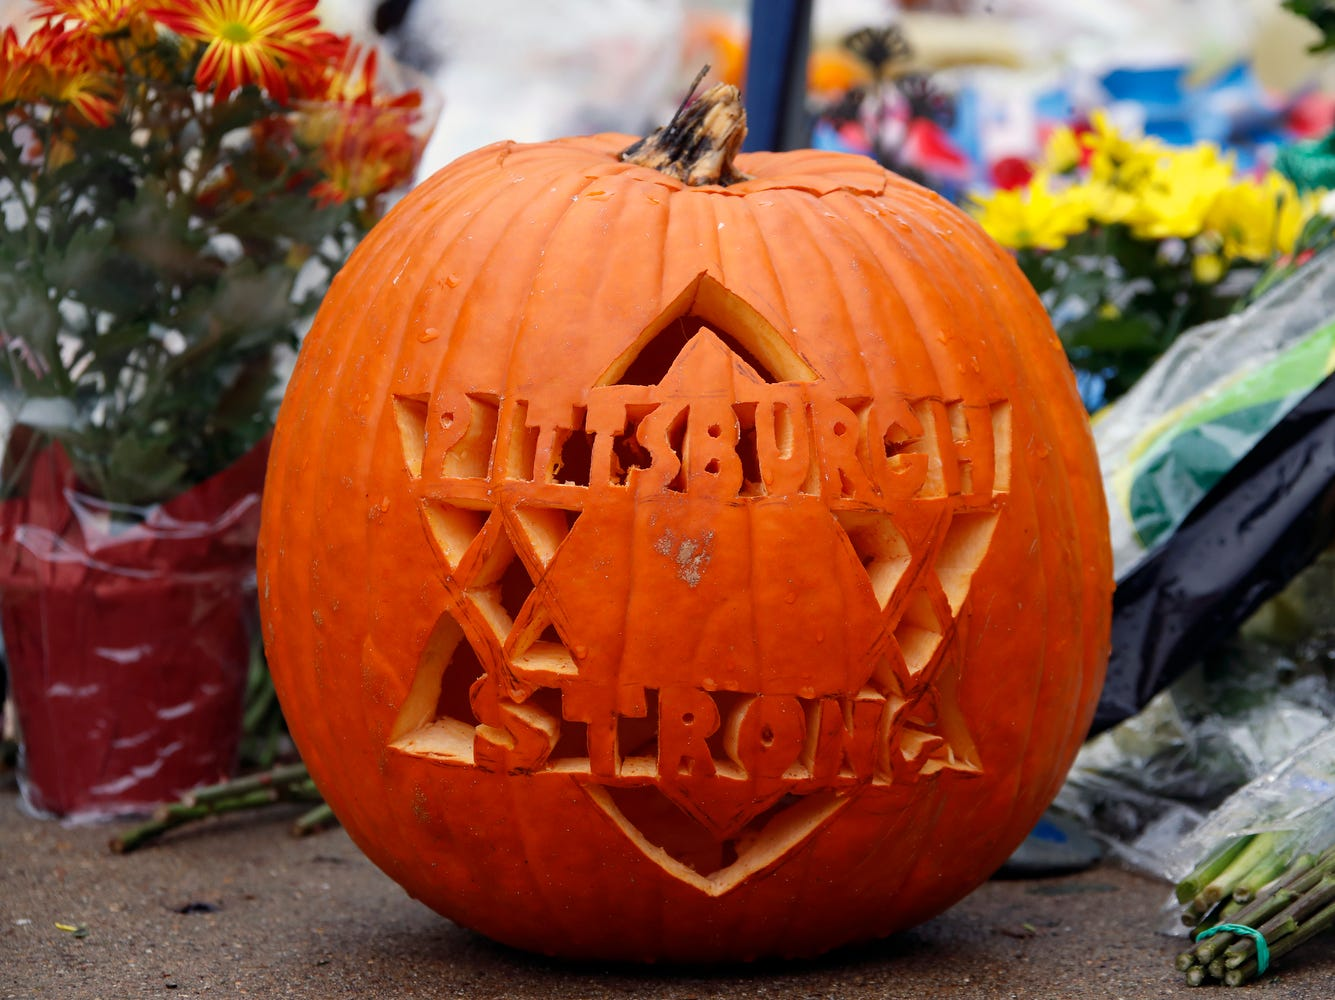 This pumpkin reflects community sentiment, Thursday, Nov. 1, 2018, at a makeshift memorial outside the Tree of Life Synagogue.